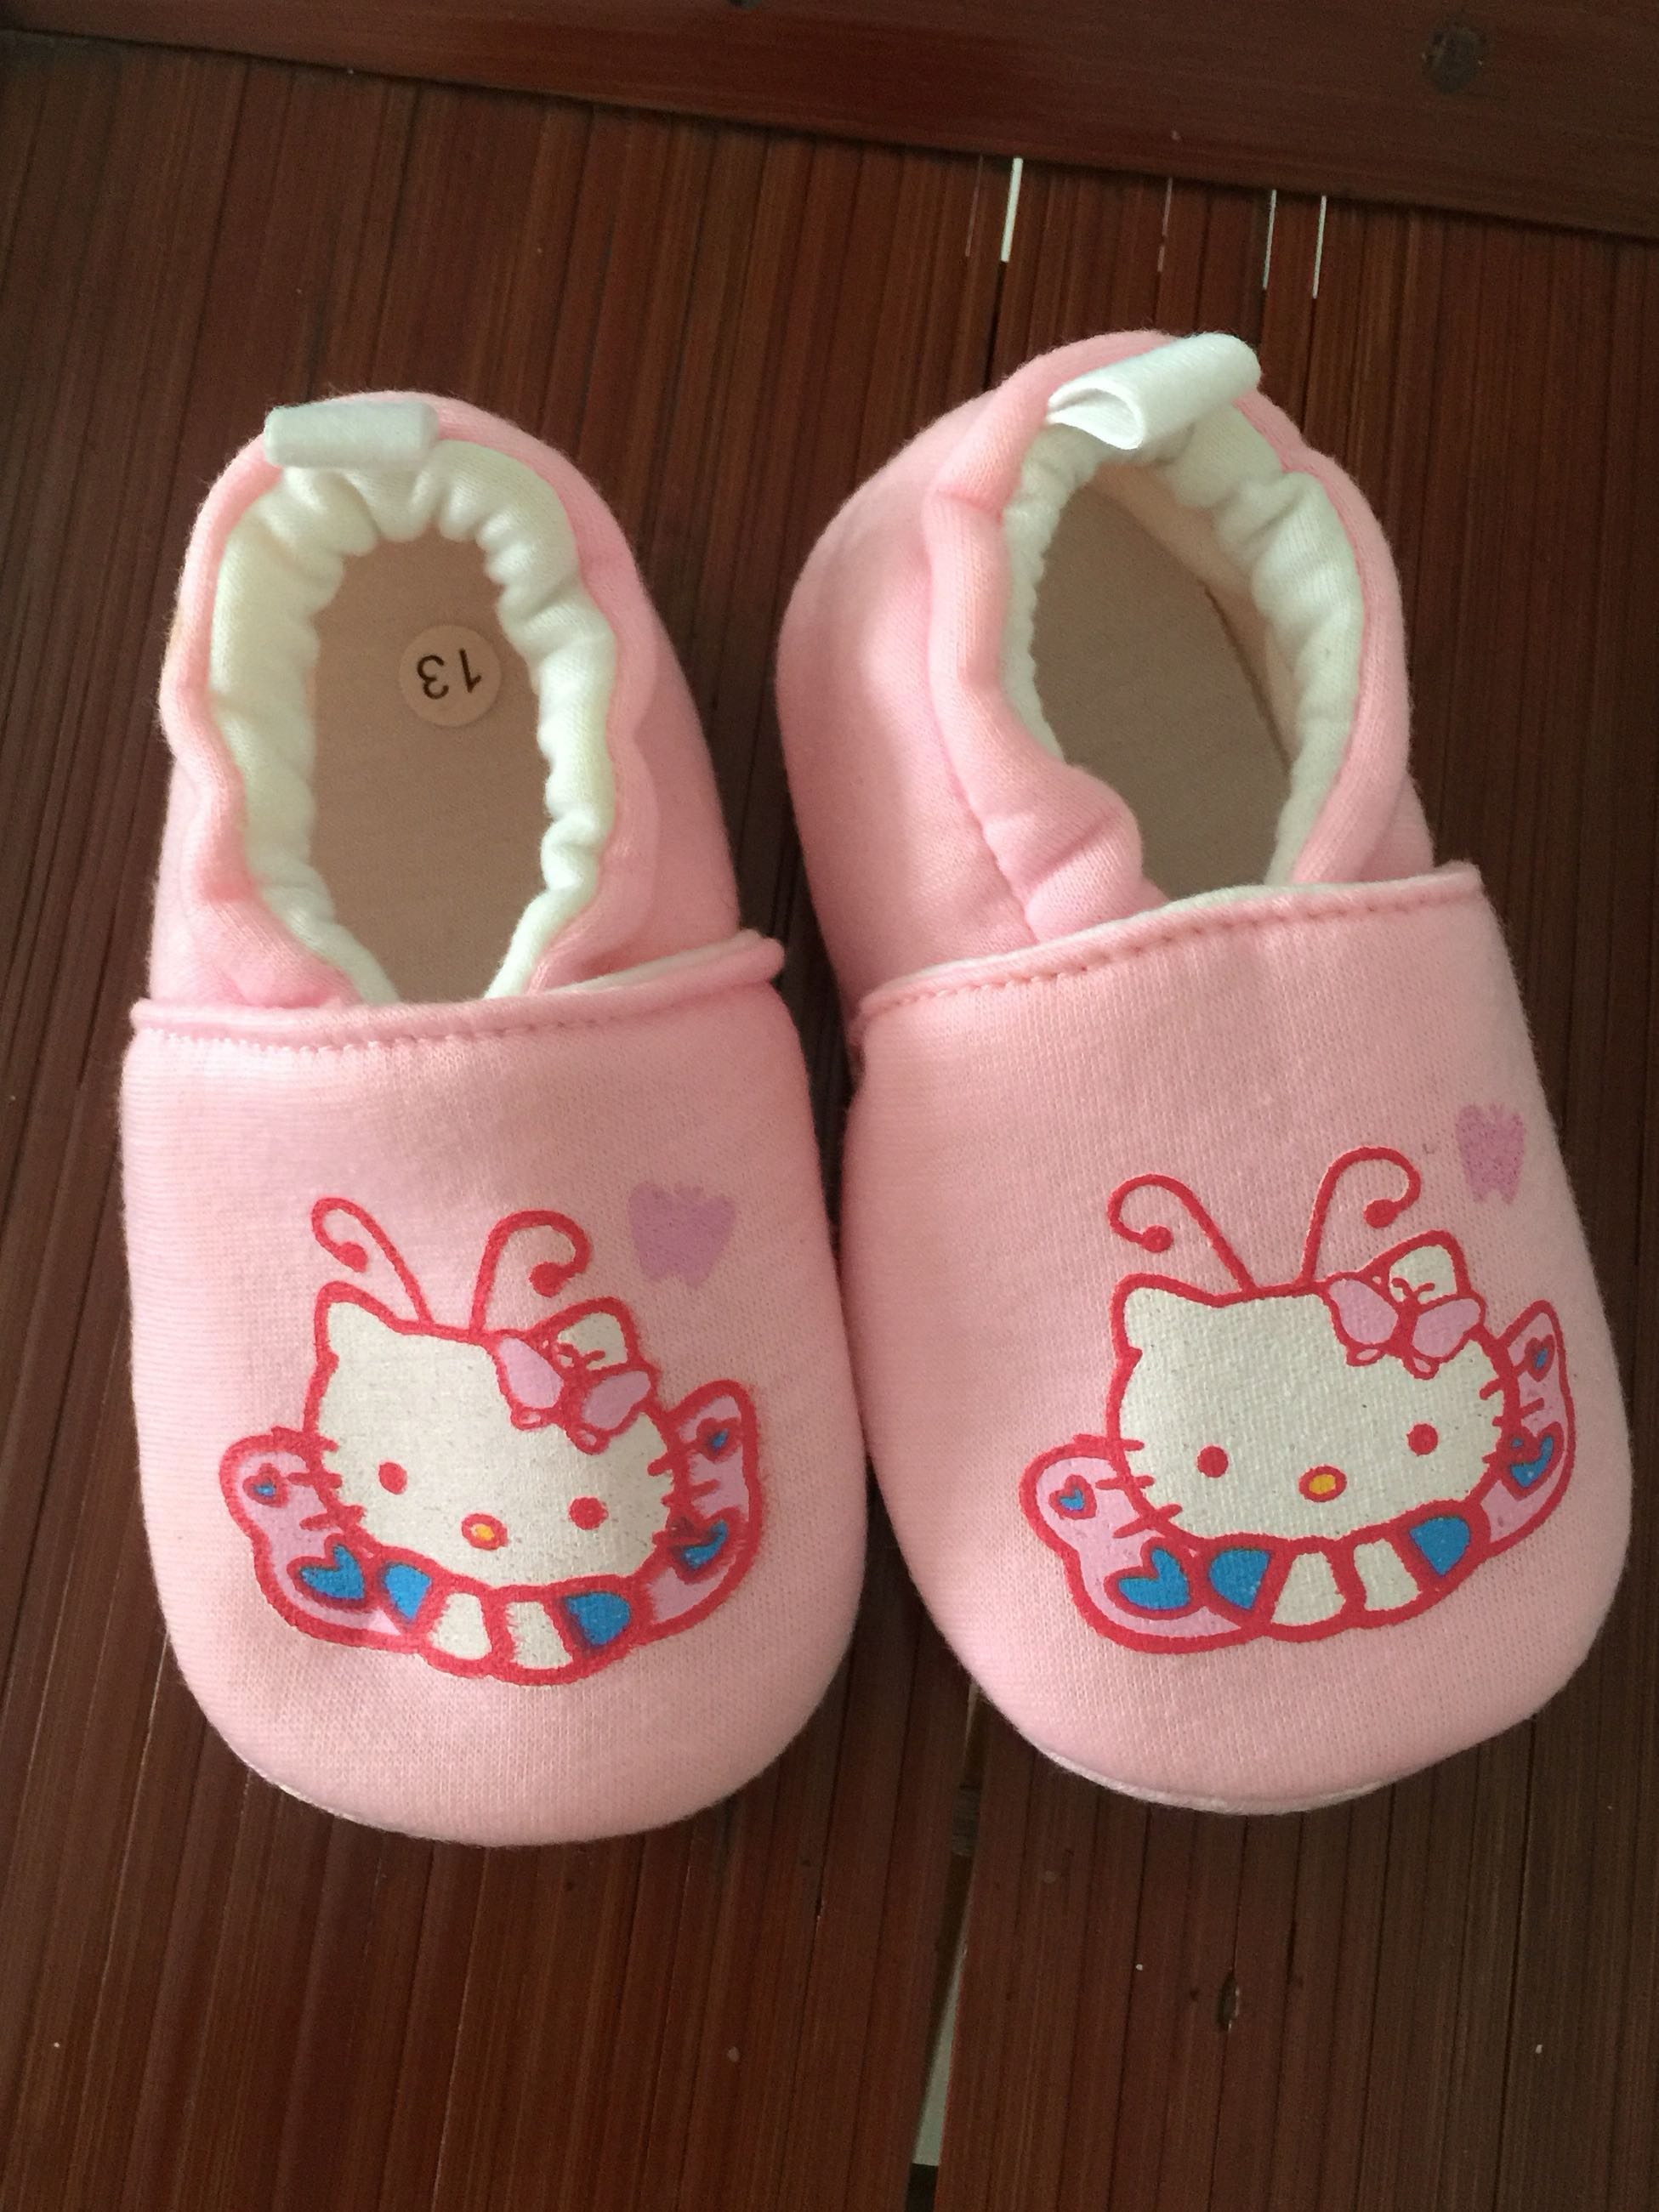 b151fe9a8 Baby Shoes - Hello Kitty, Babies & Kids, Babies Apparel on Carousell